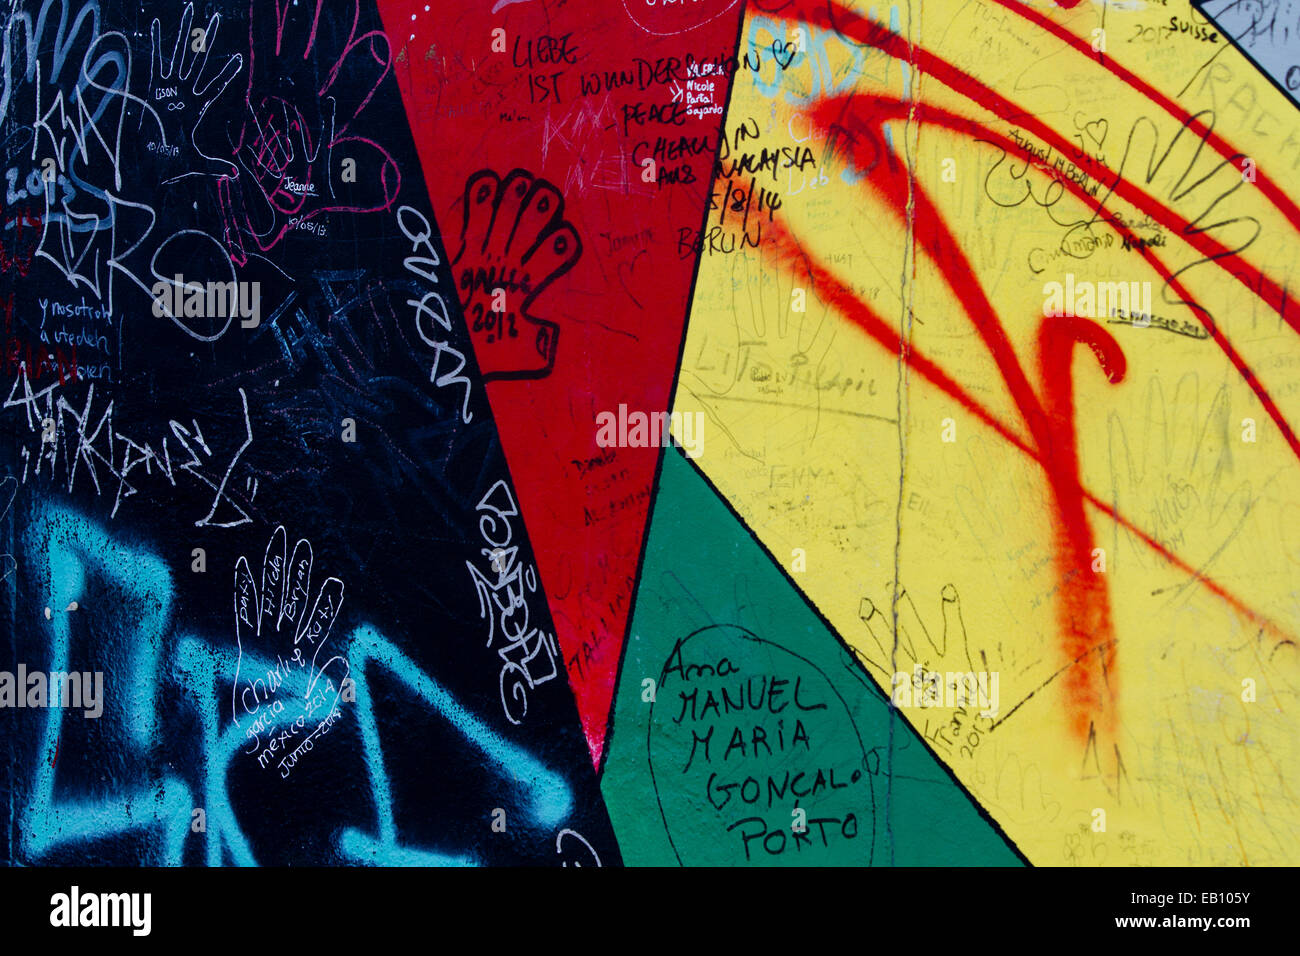 Graffiti triangle tags street art Berlin wall urban Stock Photo ...